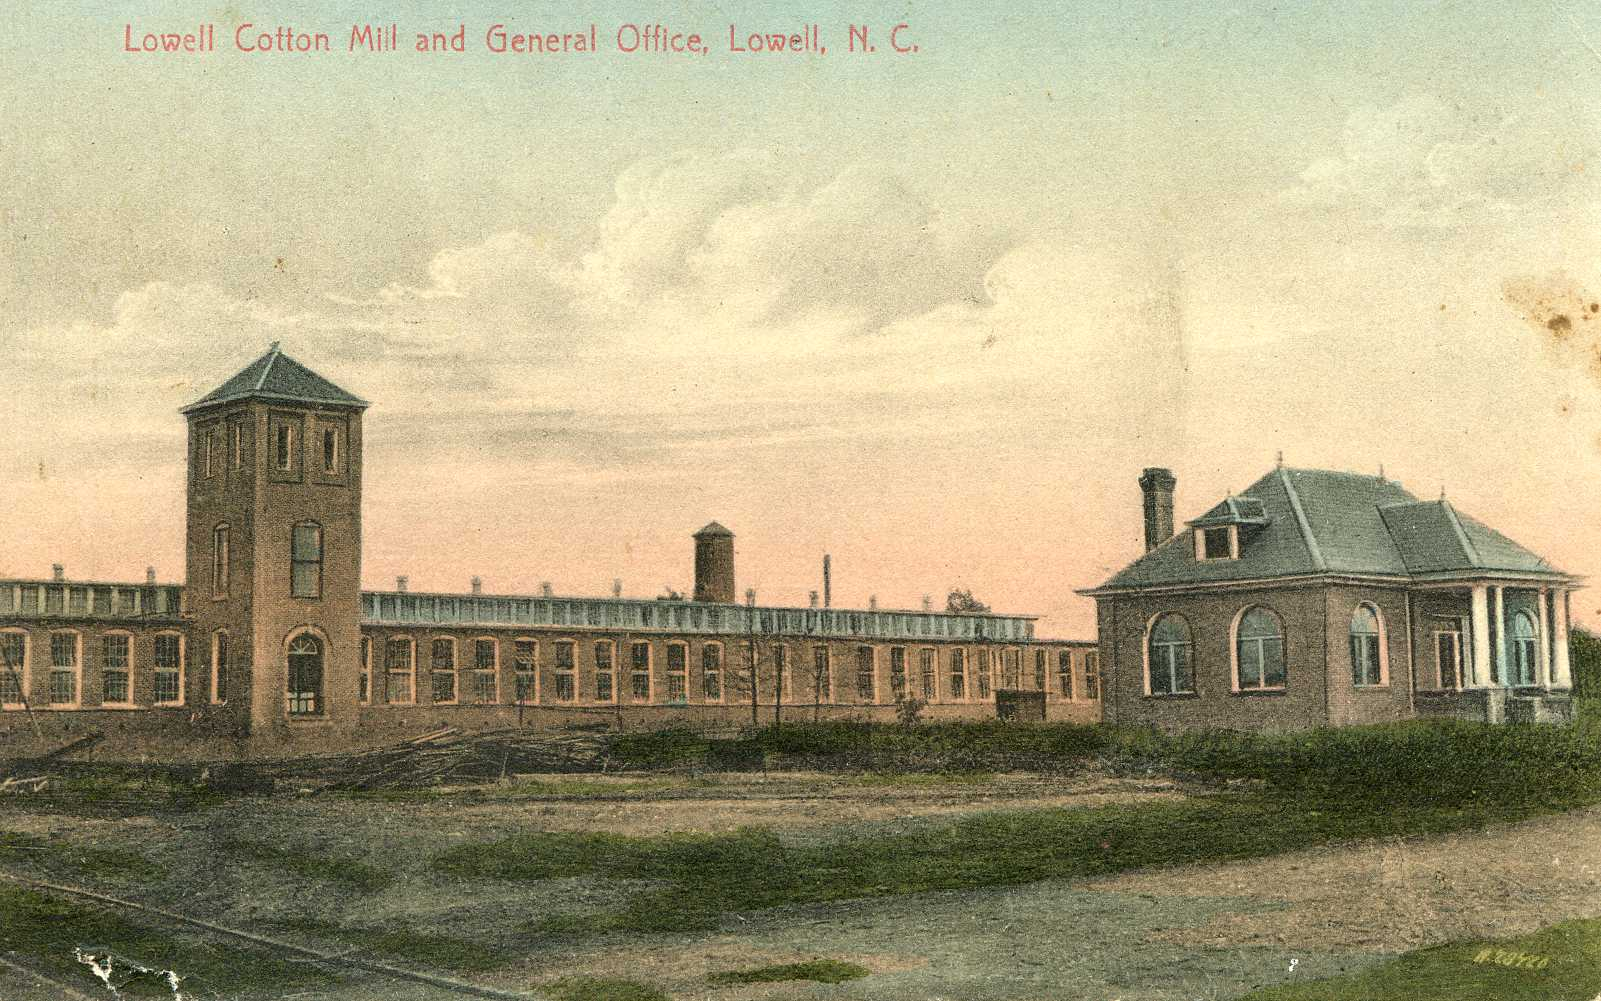 lowellcottonmilllowell